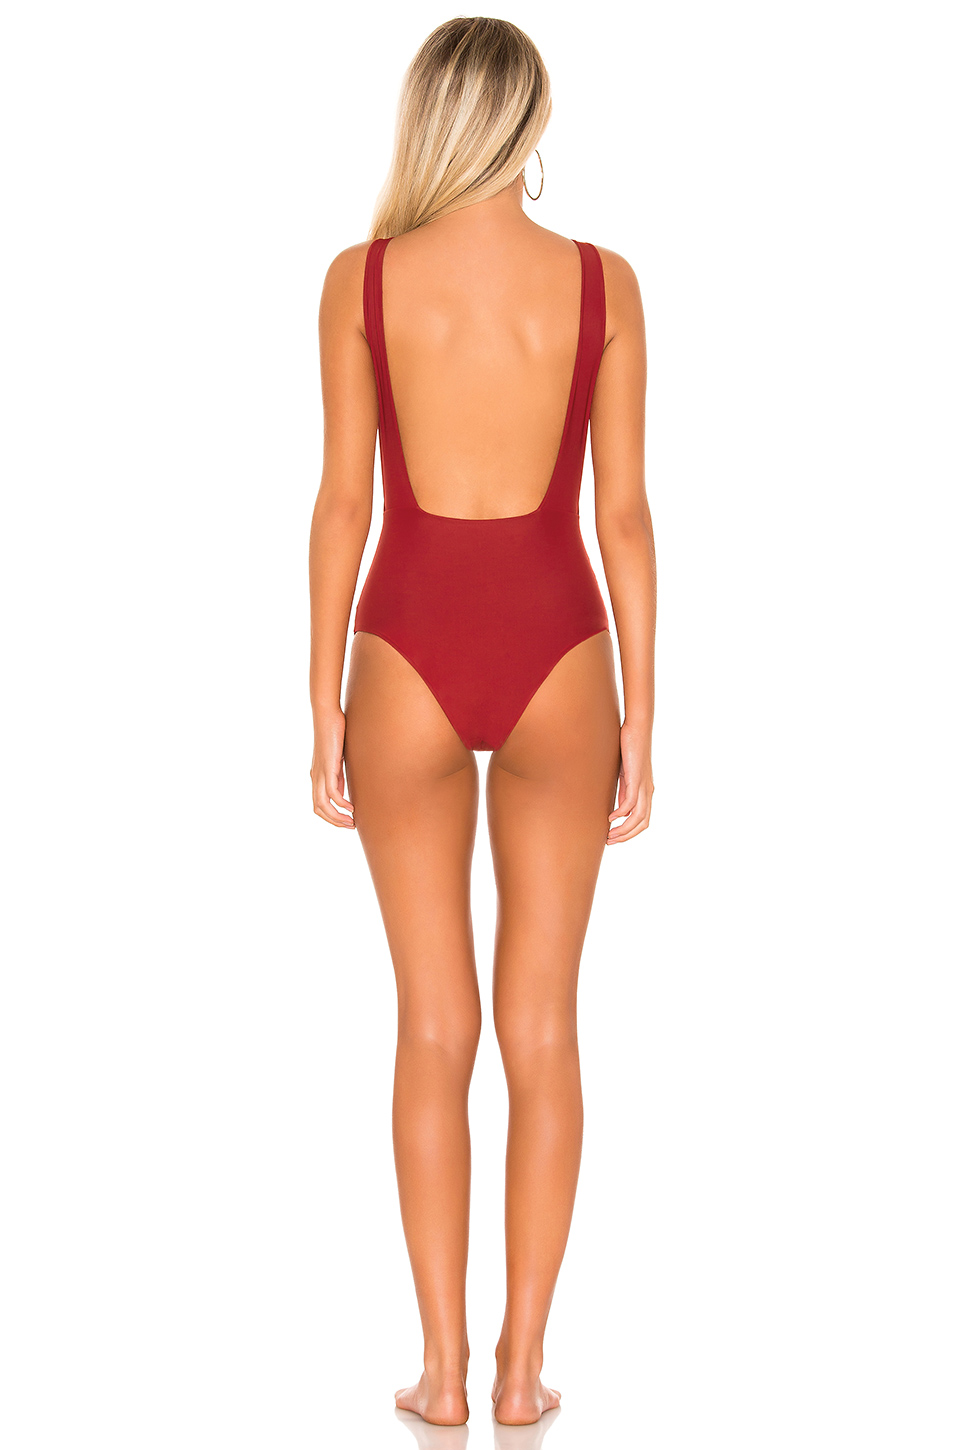 HAIGHT. New Side Slit One Piece